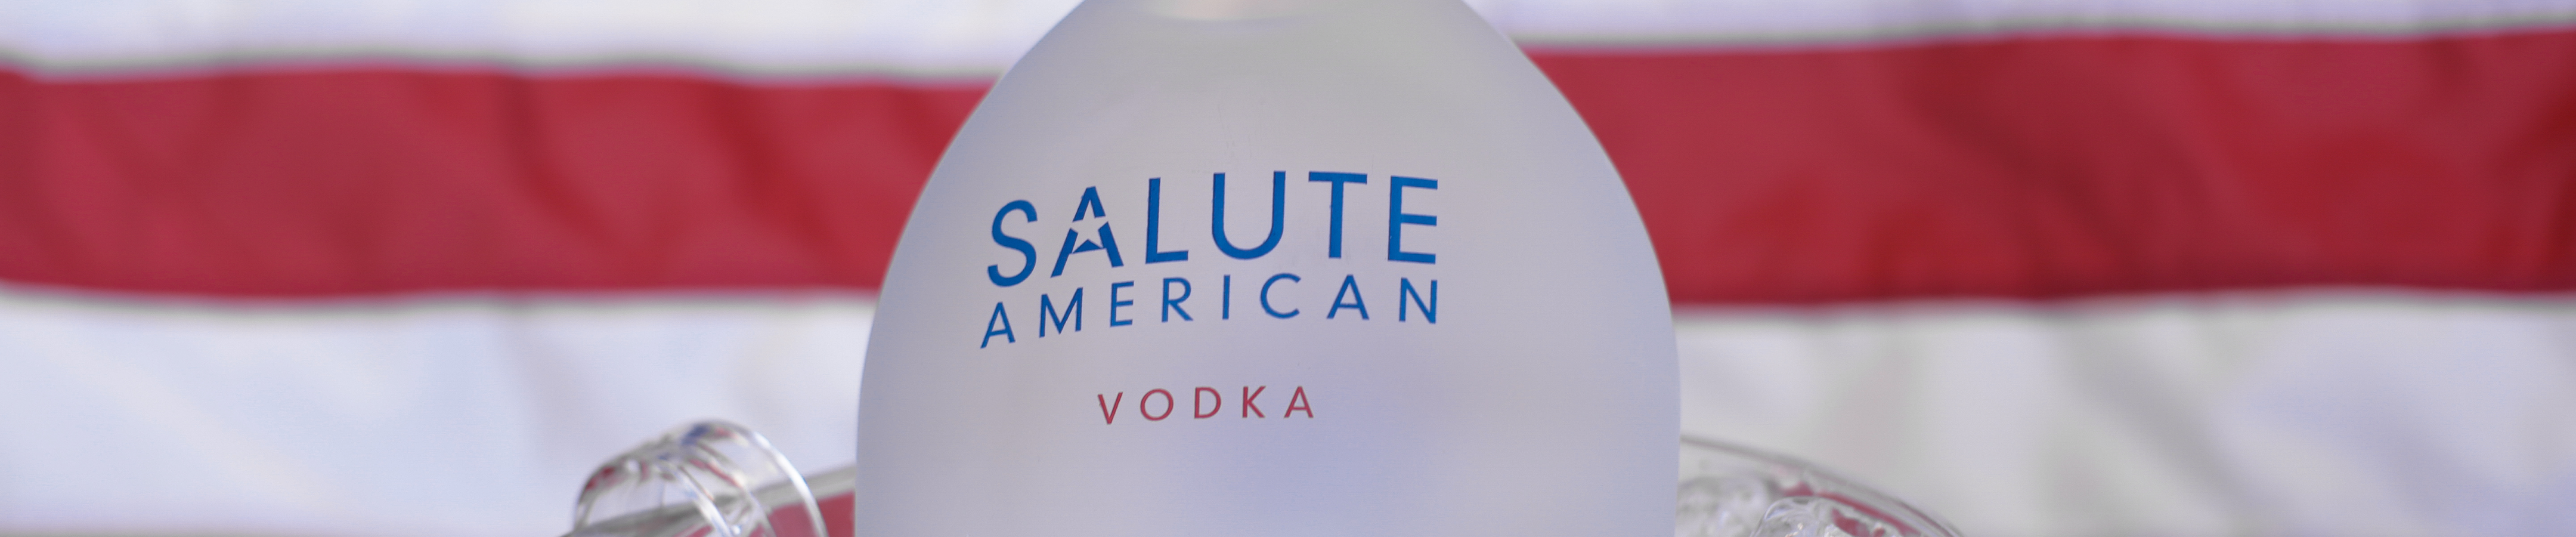 The high-quality, 80-proof, award-winning craft vodka is USA Certified™; it is 100 percent American-made from the ingredients to the bottle. Made and sold with American heroes in mind, Salute American Vodka's mission to support veterans and other heroes as they work to further their careers, start small businesses, and achieve the American dream, has been the guiding principle of the company since it was founded in 2012.